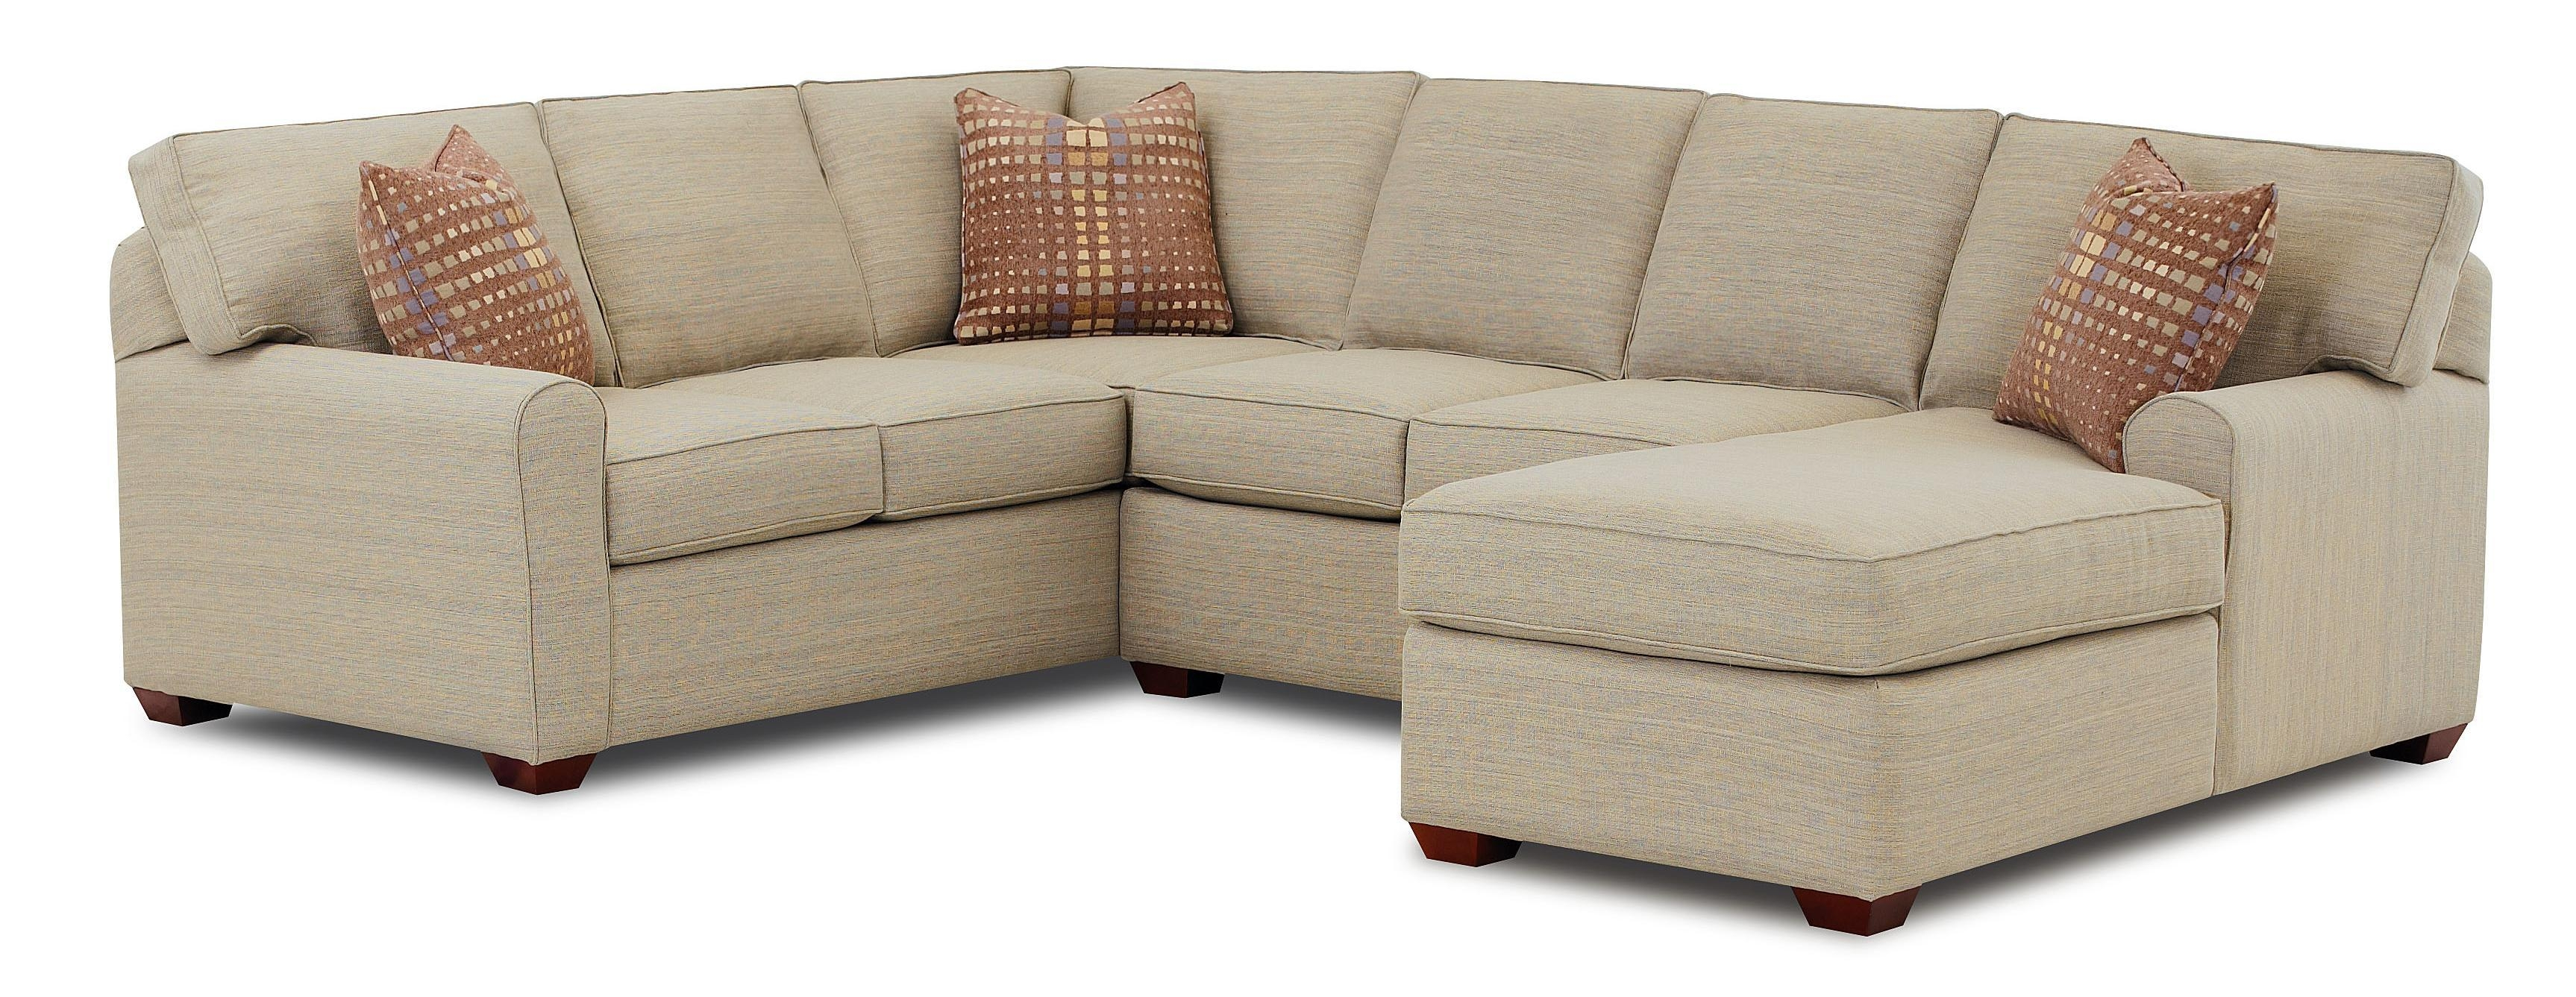 Sectional Sofa With Right Facing Chaise Loungeklaussner   Wolf Within Sofas With Chaise Longue (Image 13 of 20)